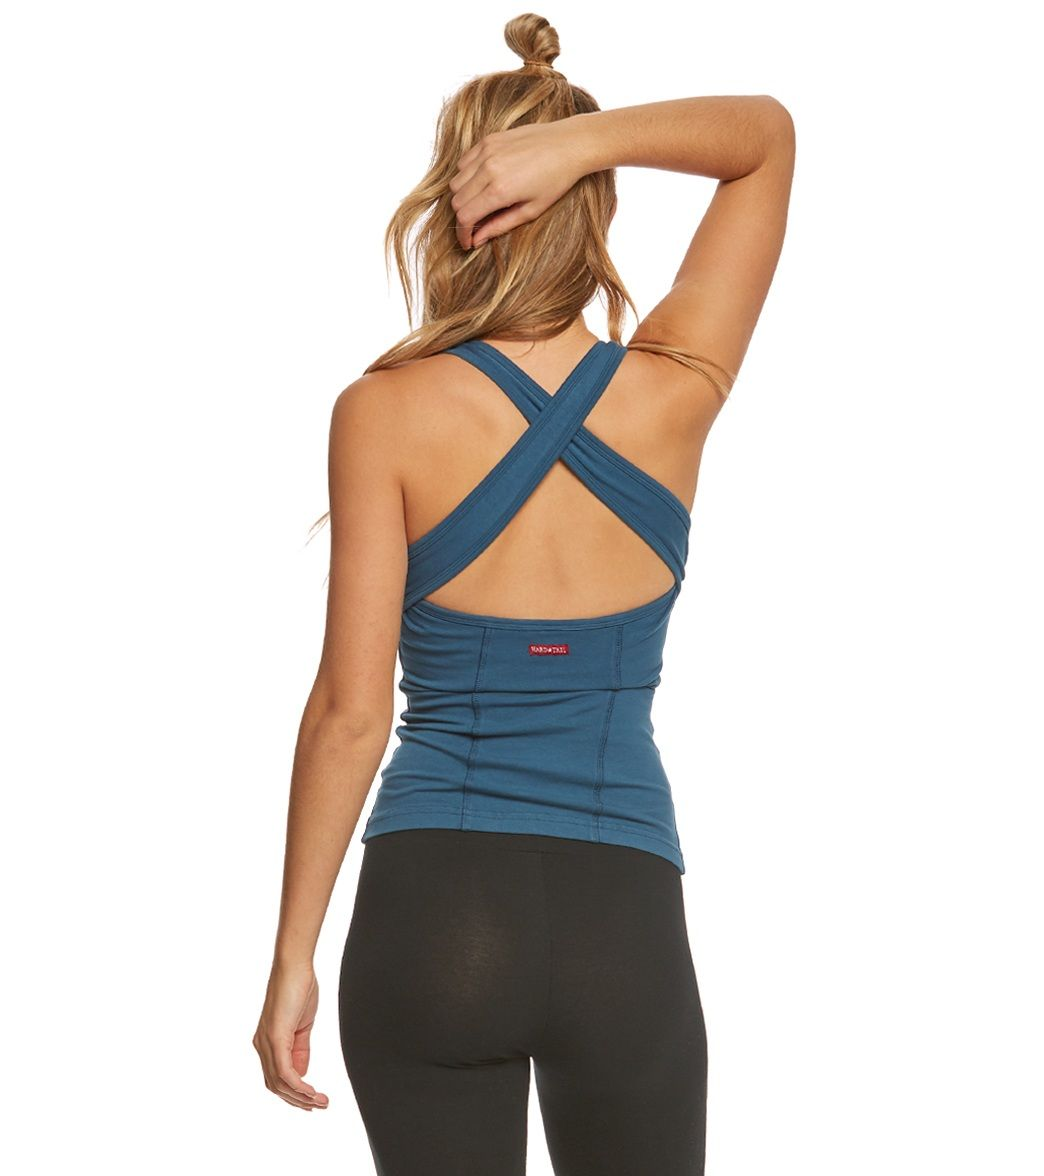 Hard Tail Open Back Support Tank Top Wide leg yoga pants